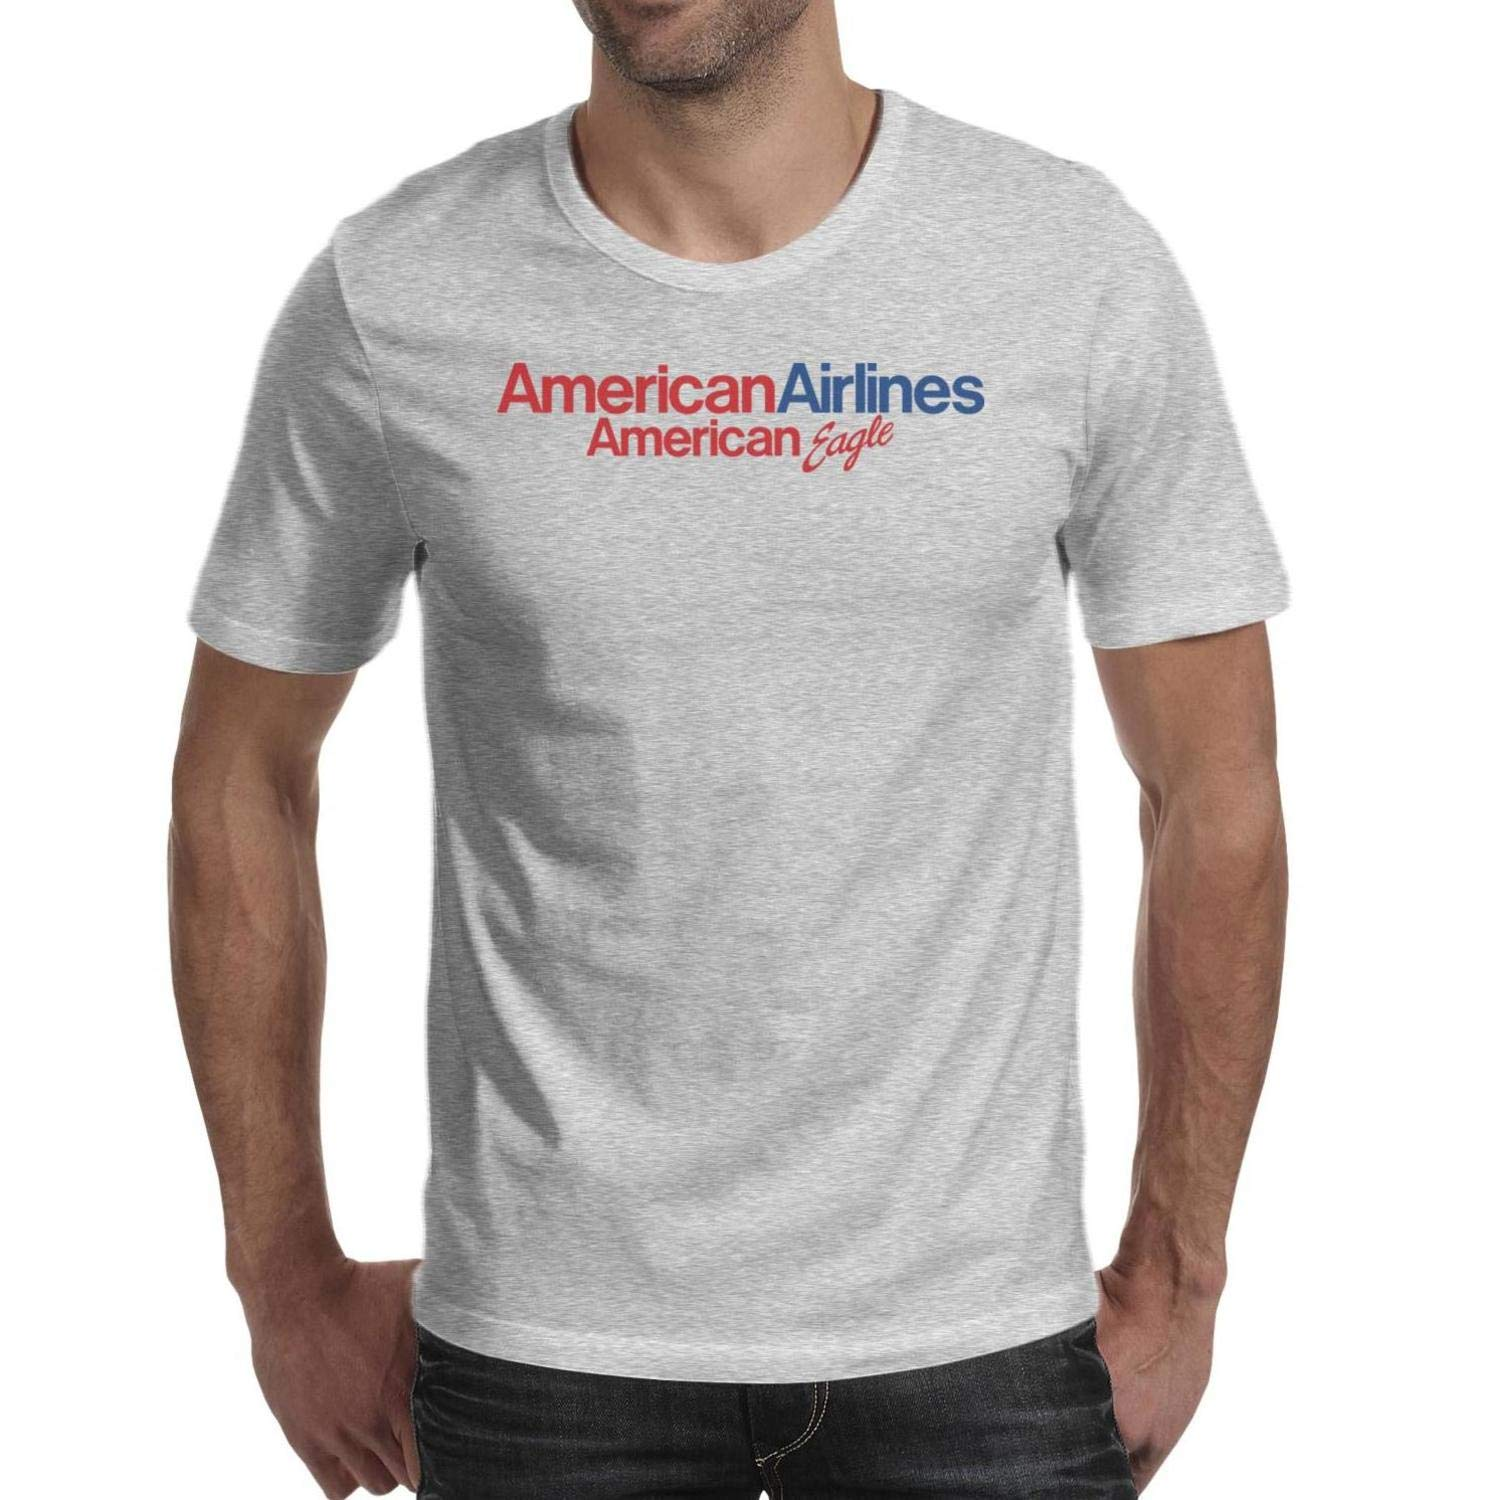 T-Shirts Male American-Eagle-Airline-Logo-Symbol Pure Pocket Loose Blending